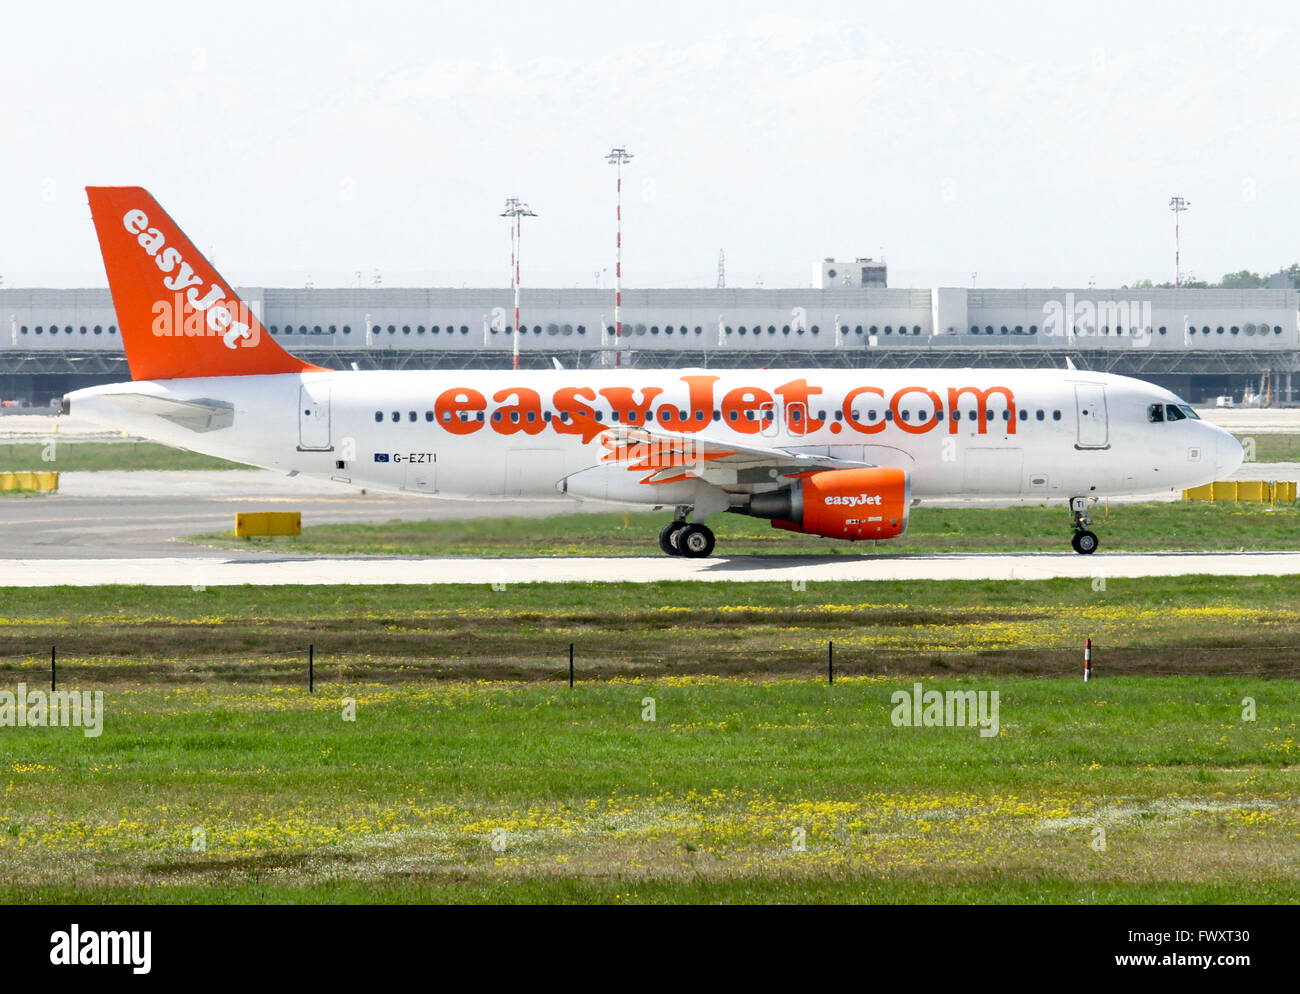 EasyJet, Airbus A320-214 at Linate airport, Milan, Italy Stock Photo